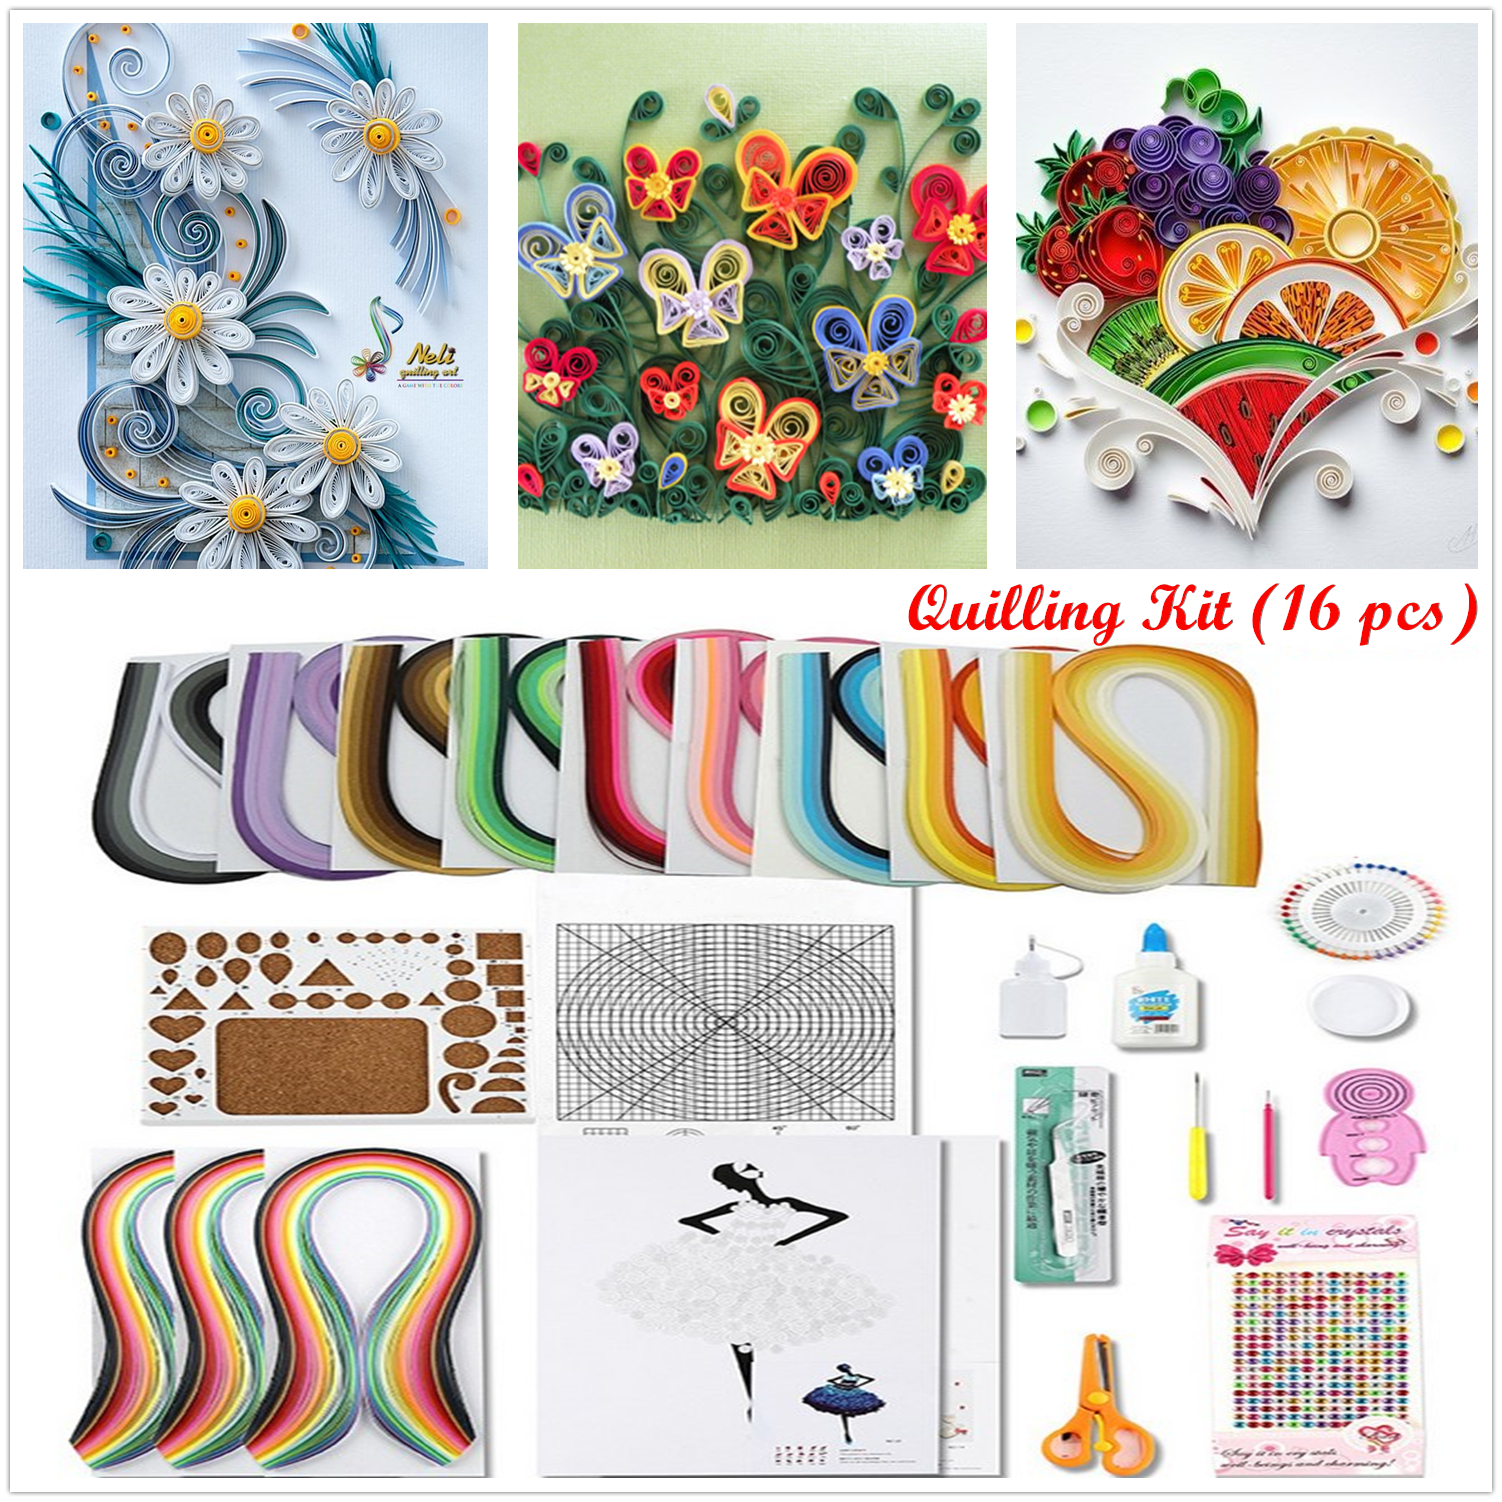 Easy Quilling Tool Kits Supplies DIY Handicraft Craft Tool 【50% OFF Today Only】